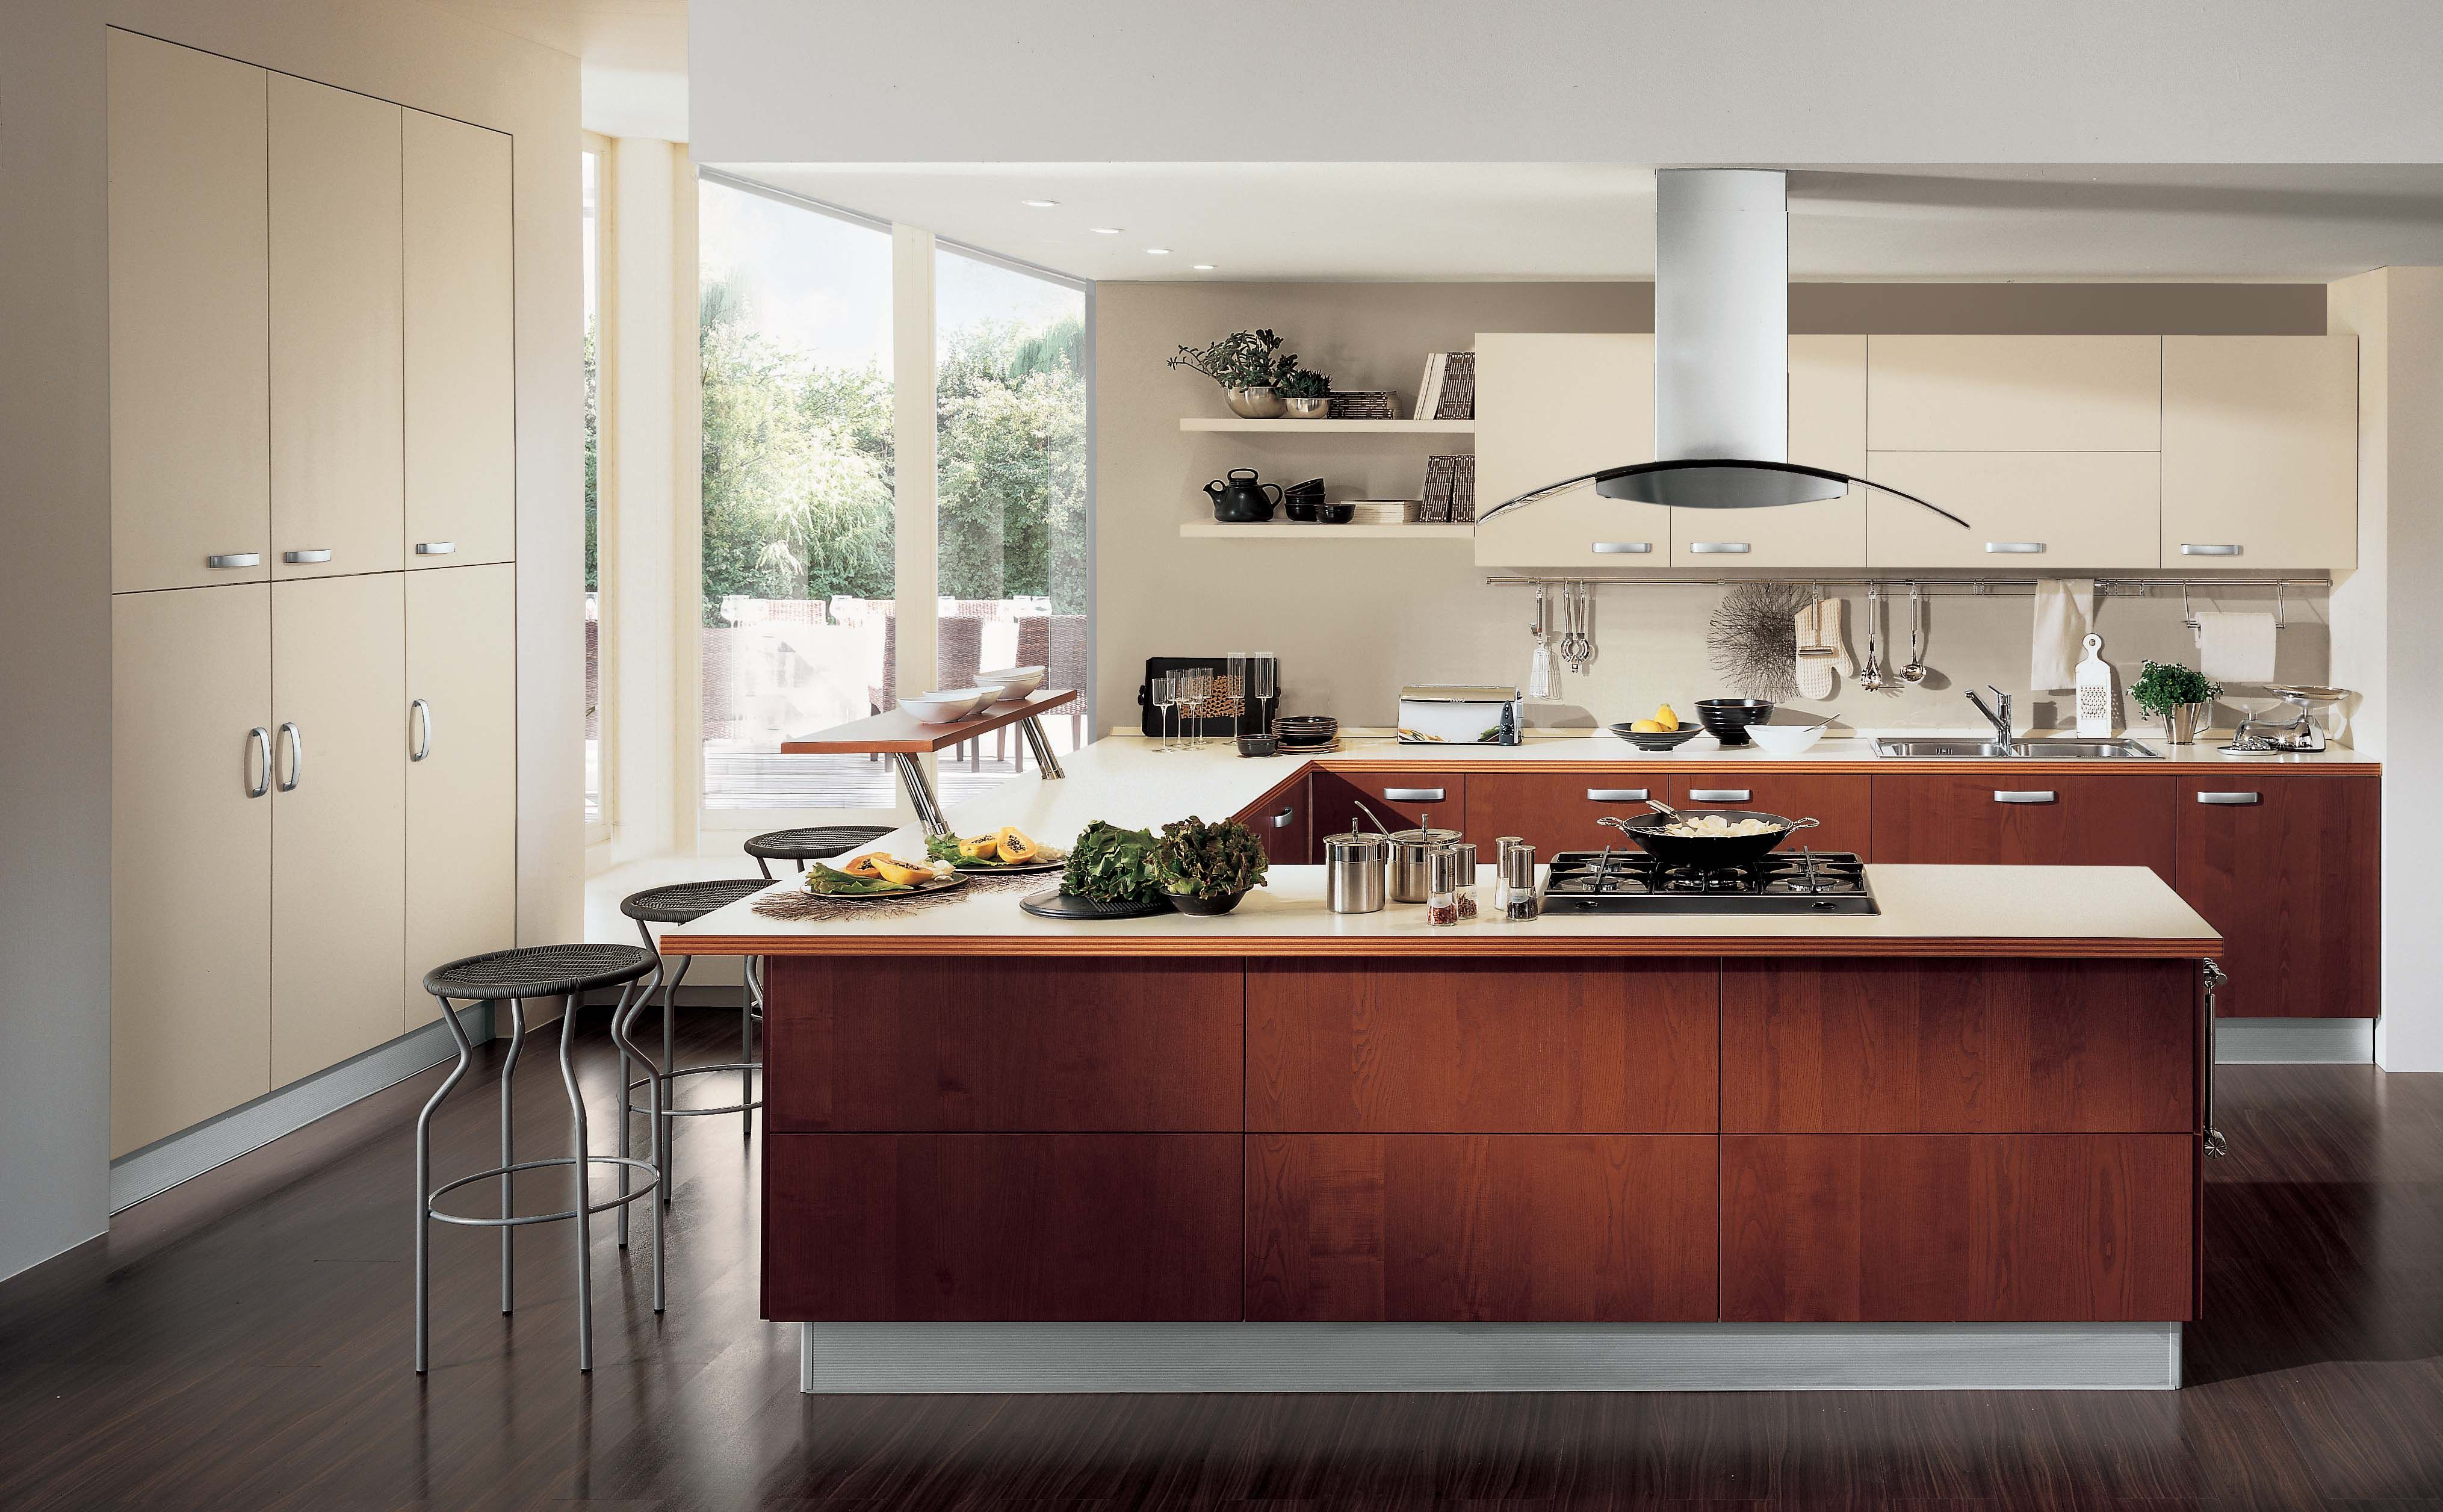 Modern Kitchen  Google Search  Kitchen Ideas  Pinterest Entrancing Kitchen Designs Contemporary Design Decoration